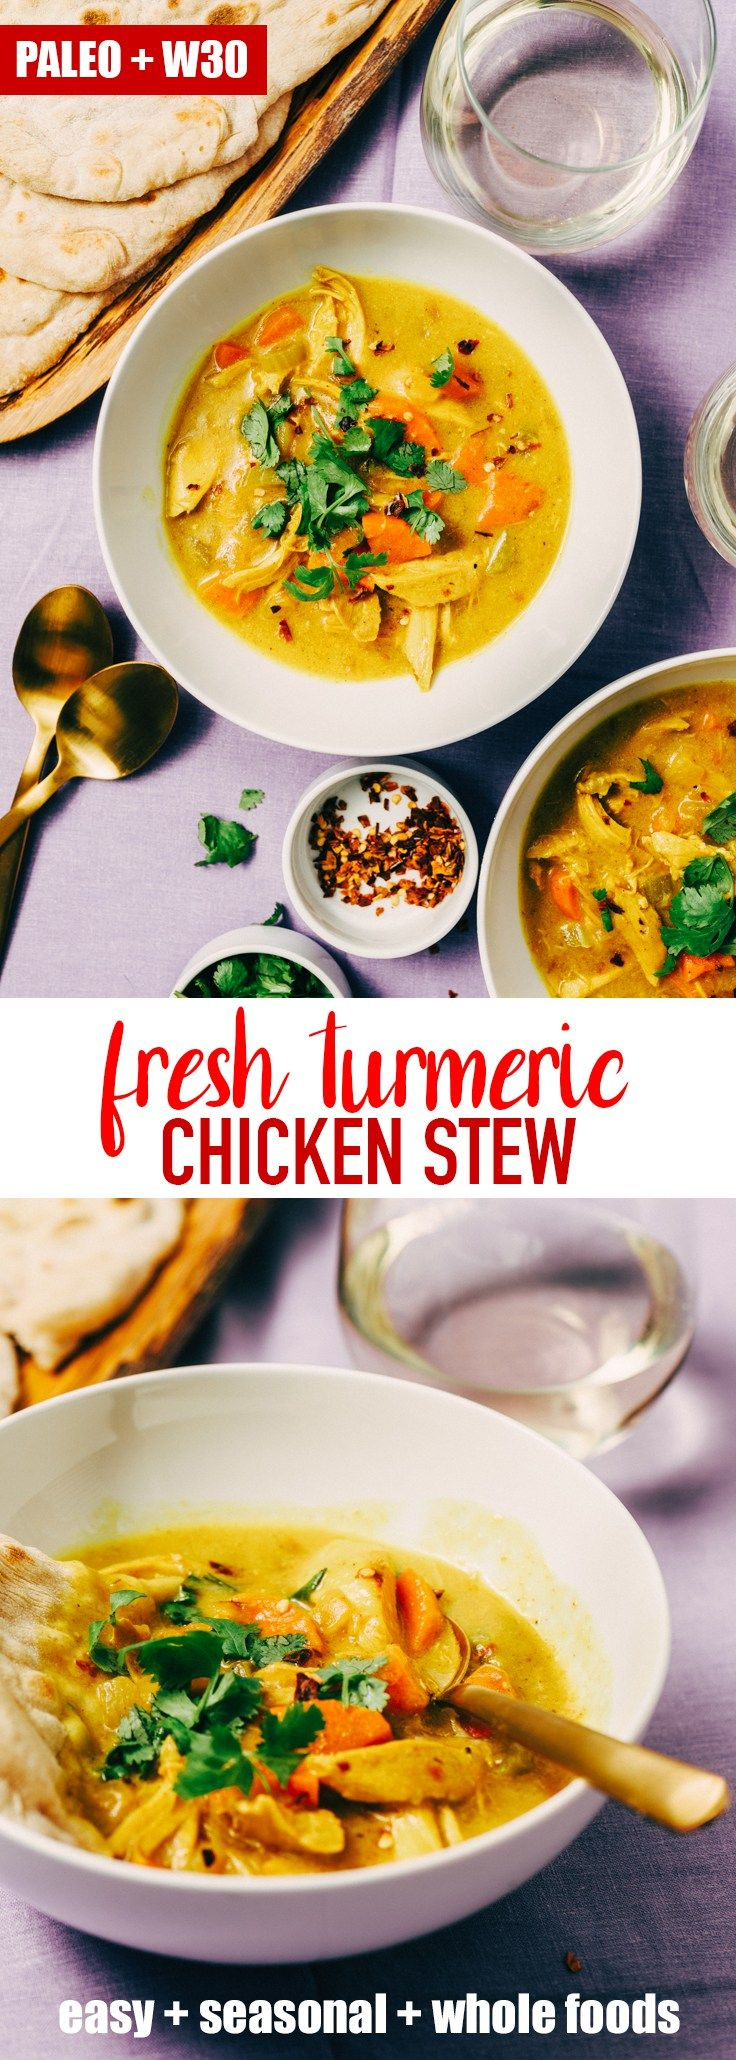 The tang and spice of fresh turmeric root really shines in this easy weeknight turmeric chicken stew. It's a delicious twist on classic chicken soup that uses leftover chicken, lots of fresh vegetables, chicken bone broth, and a spiced turmeric coconut milk. It's naturally gluten-free, paleo, and whole 30 compliant. #paleo #whole30 #turmeric #chickenstew